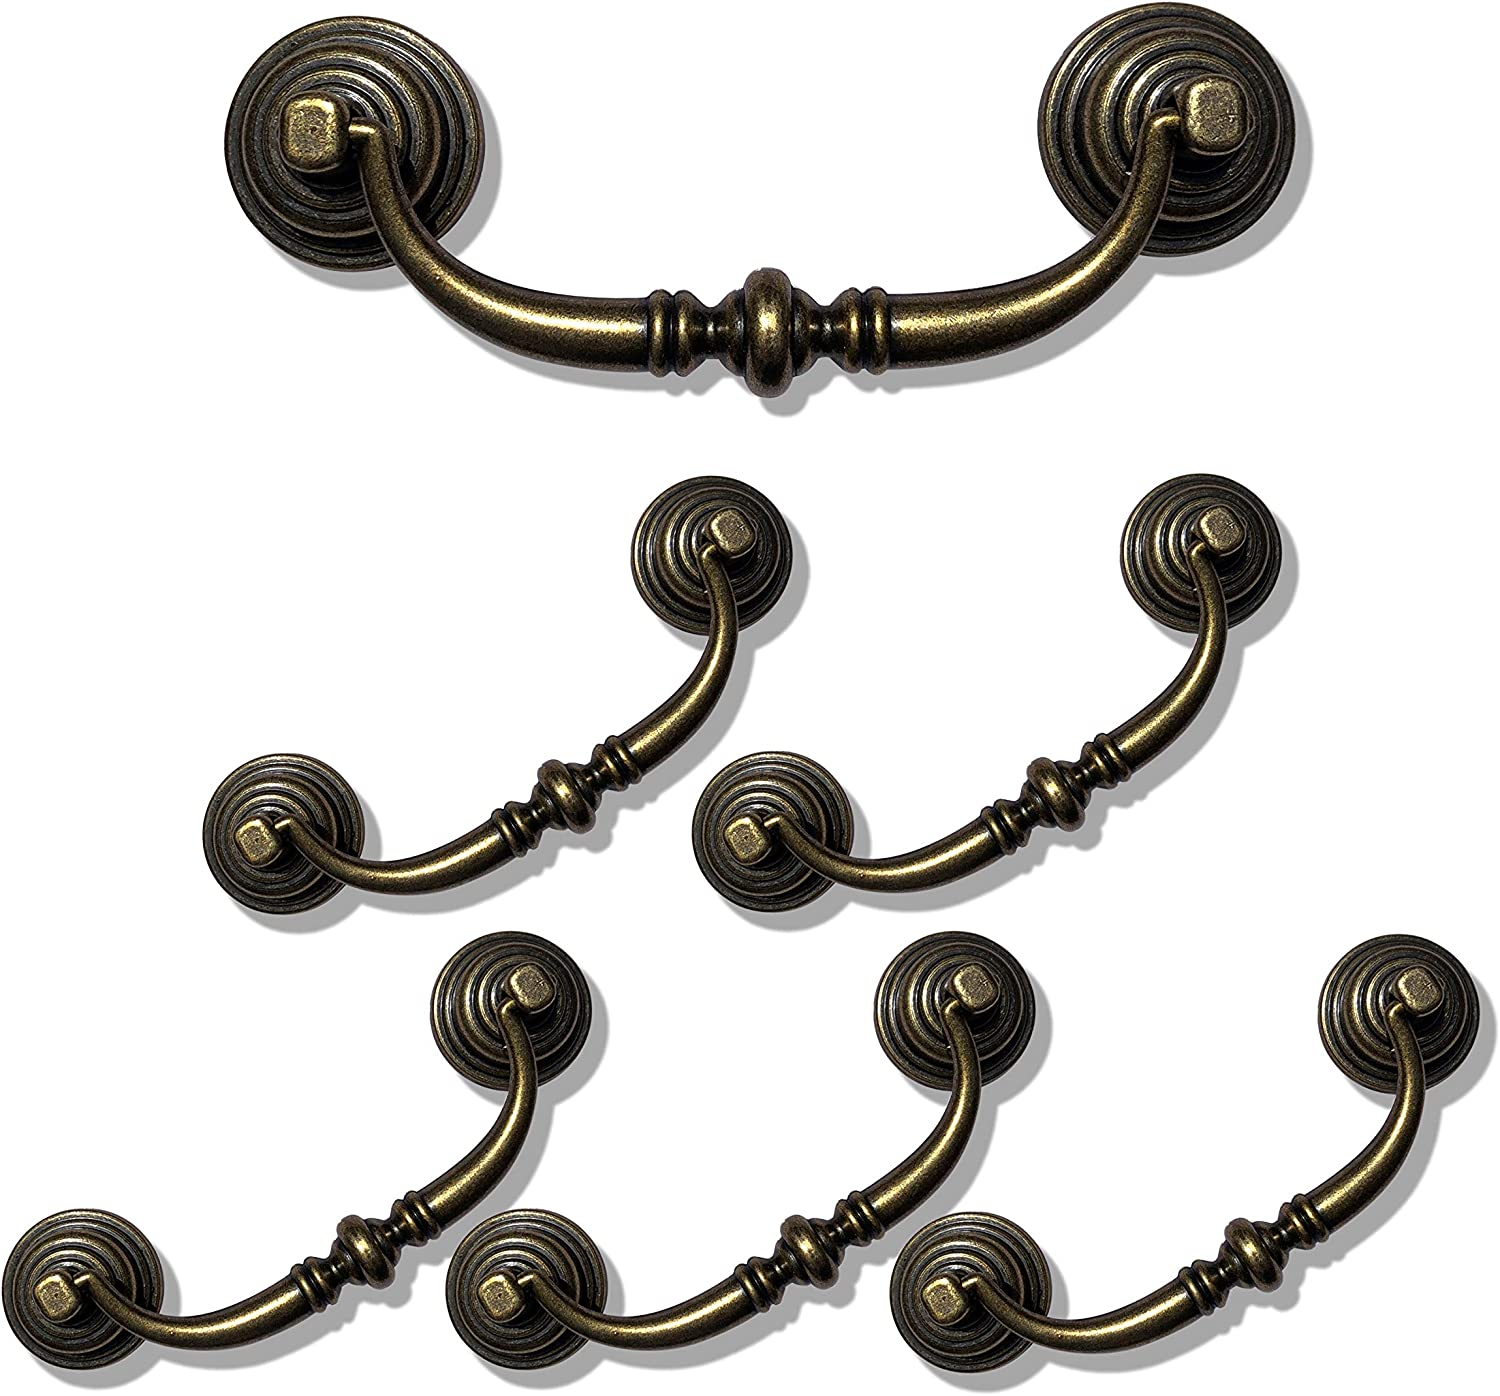 "6 Pack MOOD.SC 3.5""Hole Center Shabby Chic Drawer Pulls Handles Antique Bronze Kitchen Cabinet Drop Bail Pulls Handles (89mm/Antique Brozne)"